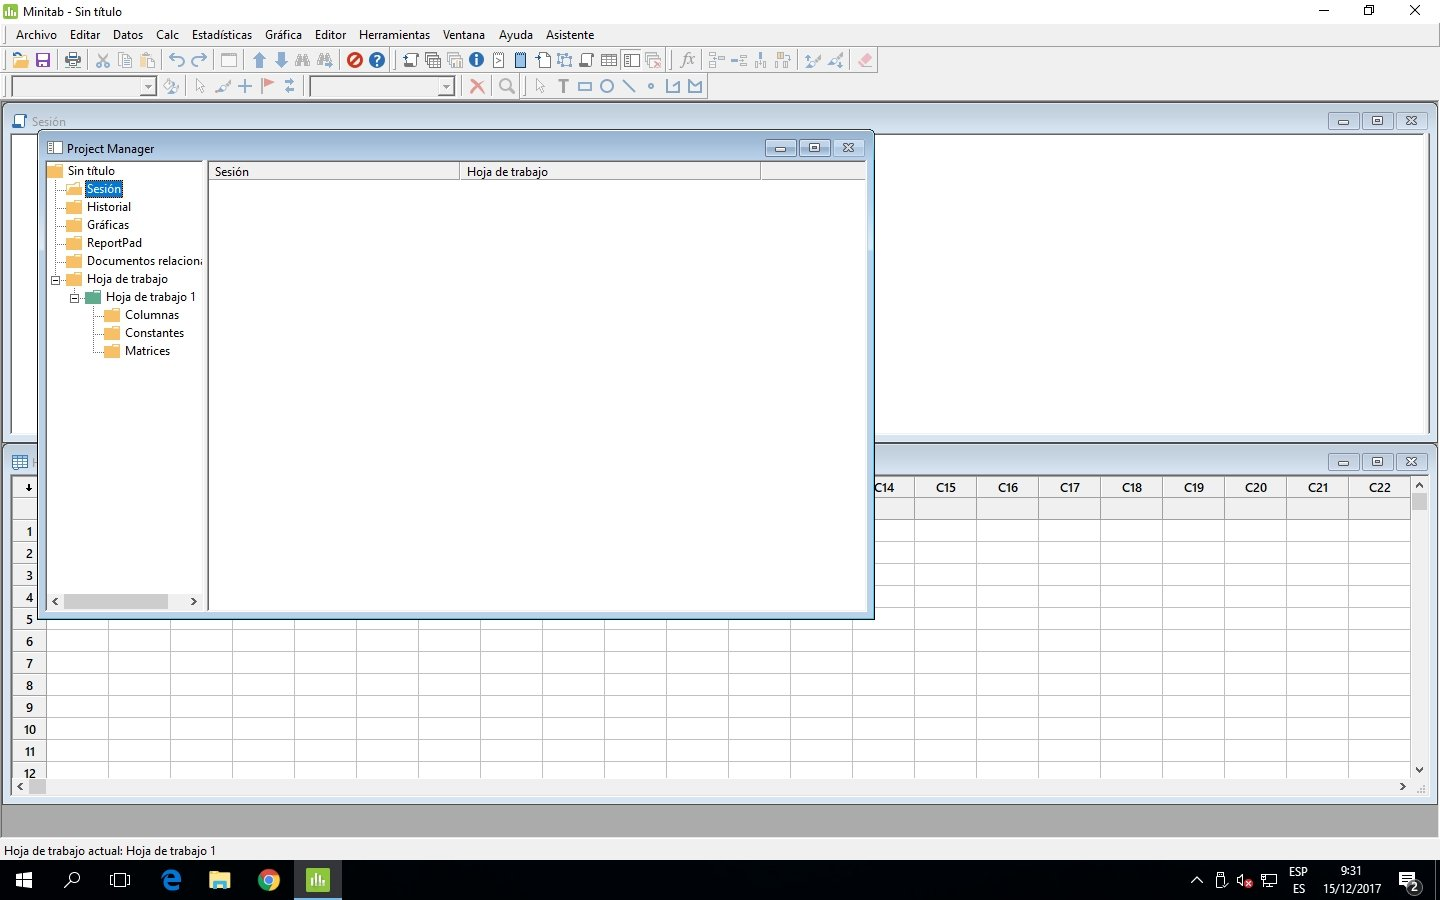 minitab 18 free download full version